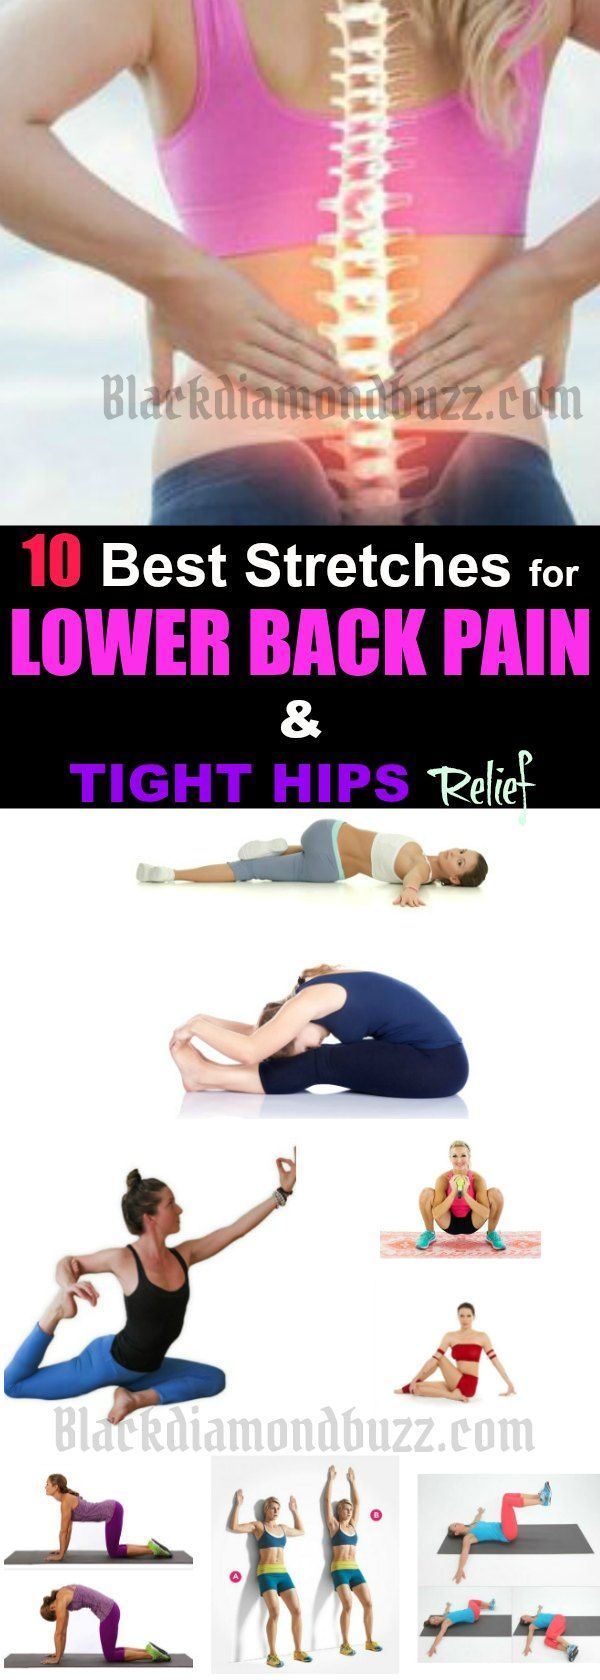 Stretches for Lower Back Pain - Do you want to get rid of lower back pain fast? Here are best stretches for lower back pain and tight hips you can do at home for lower back pain relief. What are the Causes of Lower Back Pain? Degenerative disc disease B